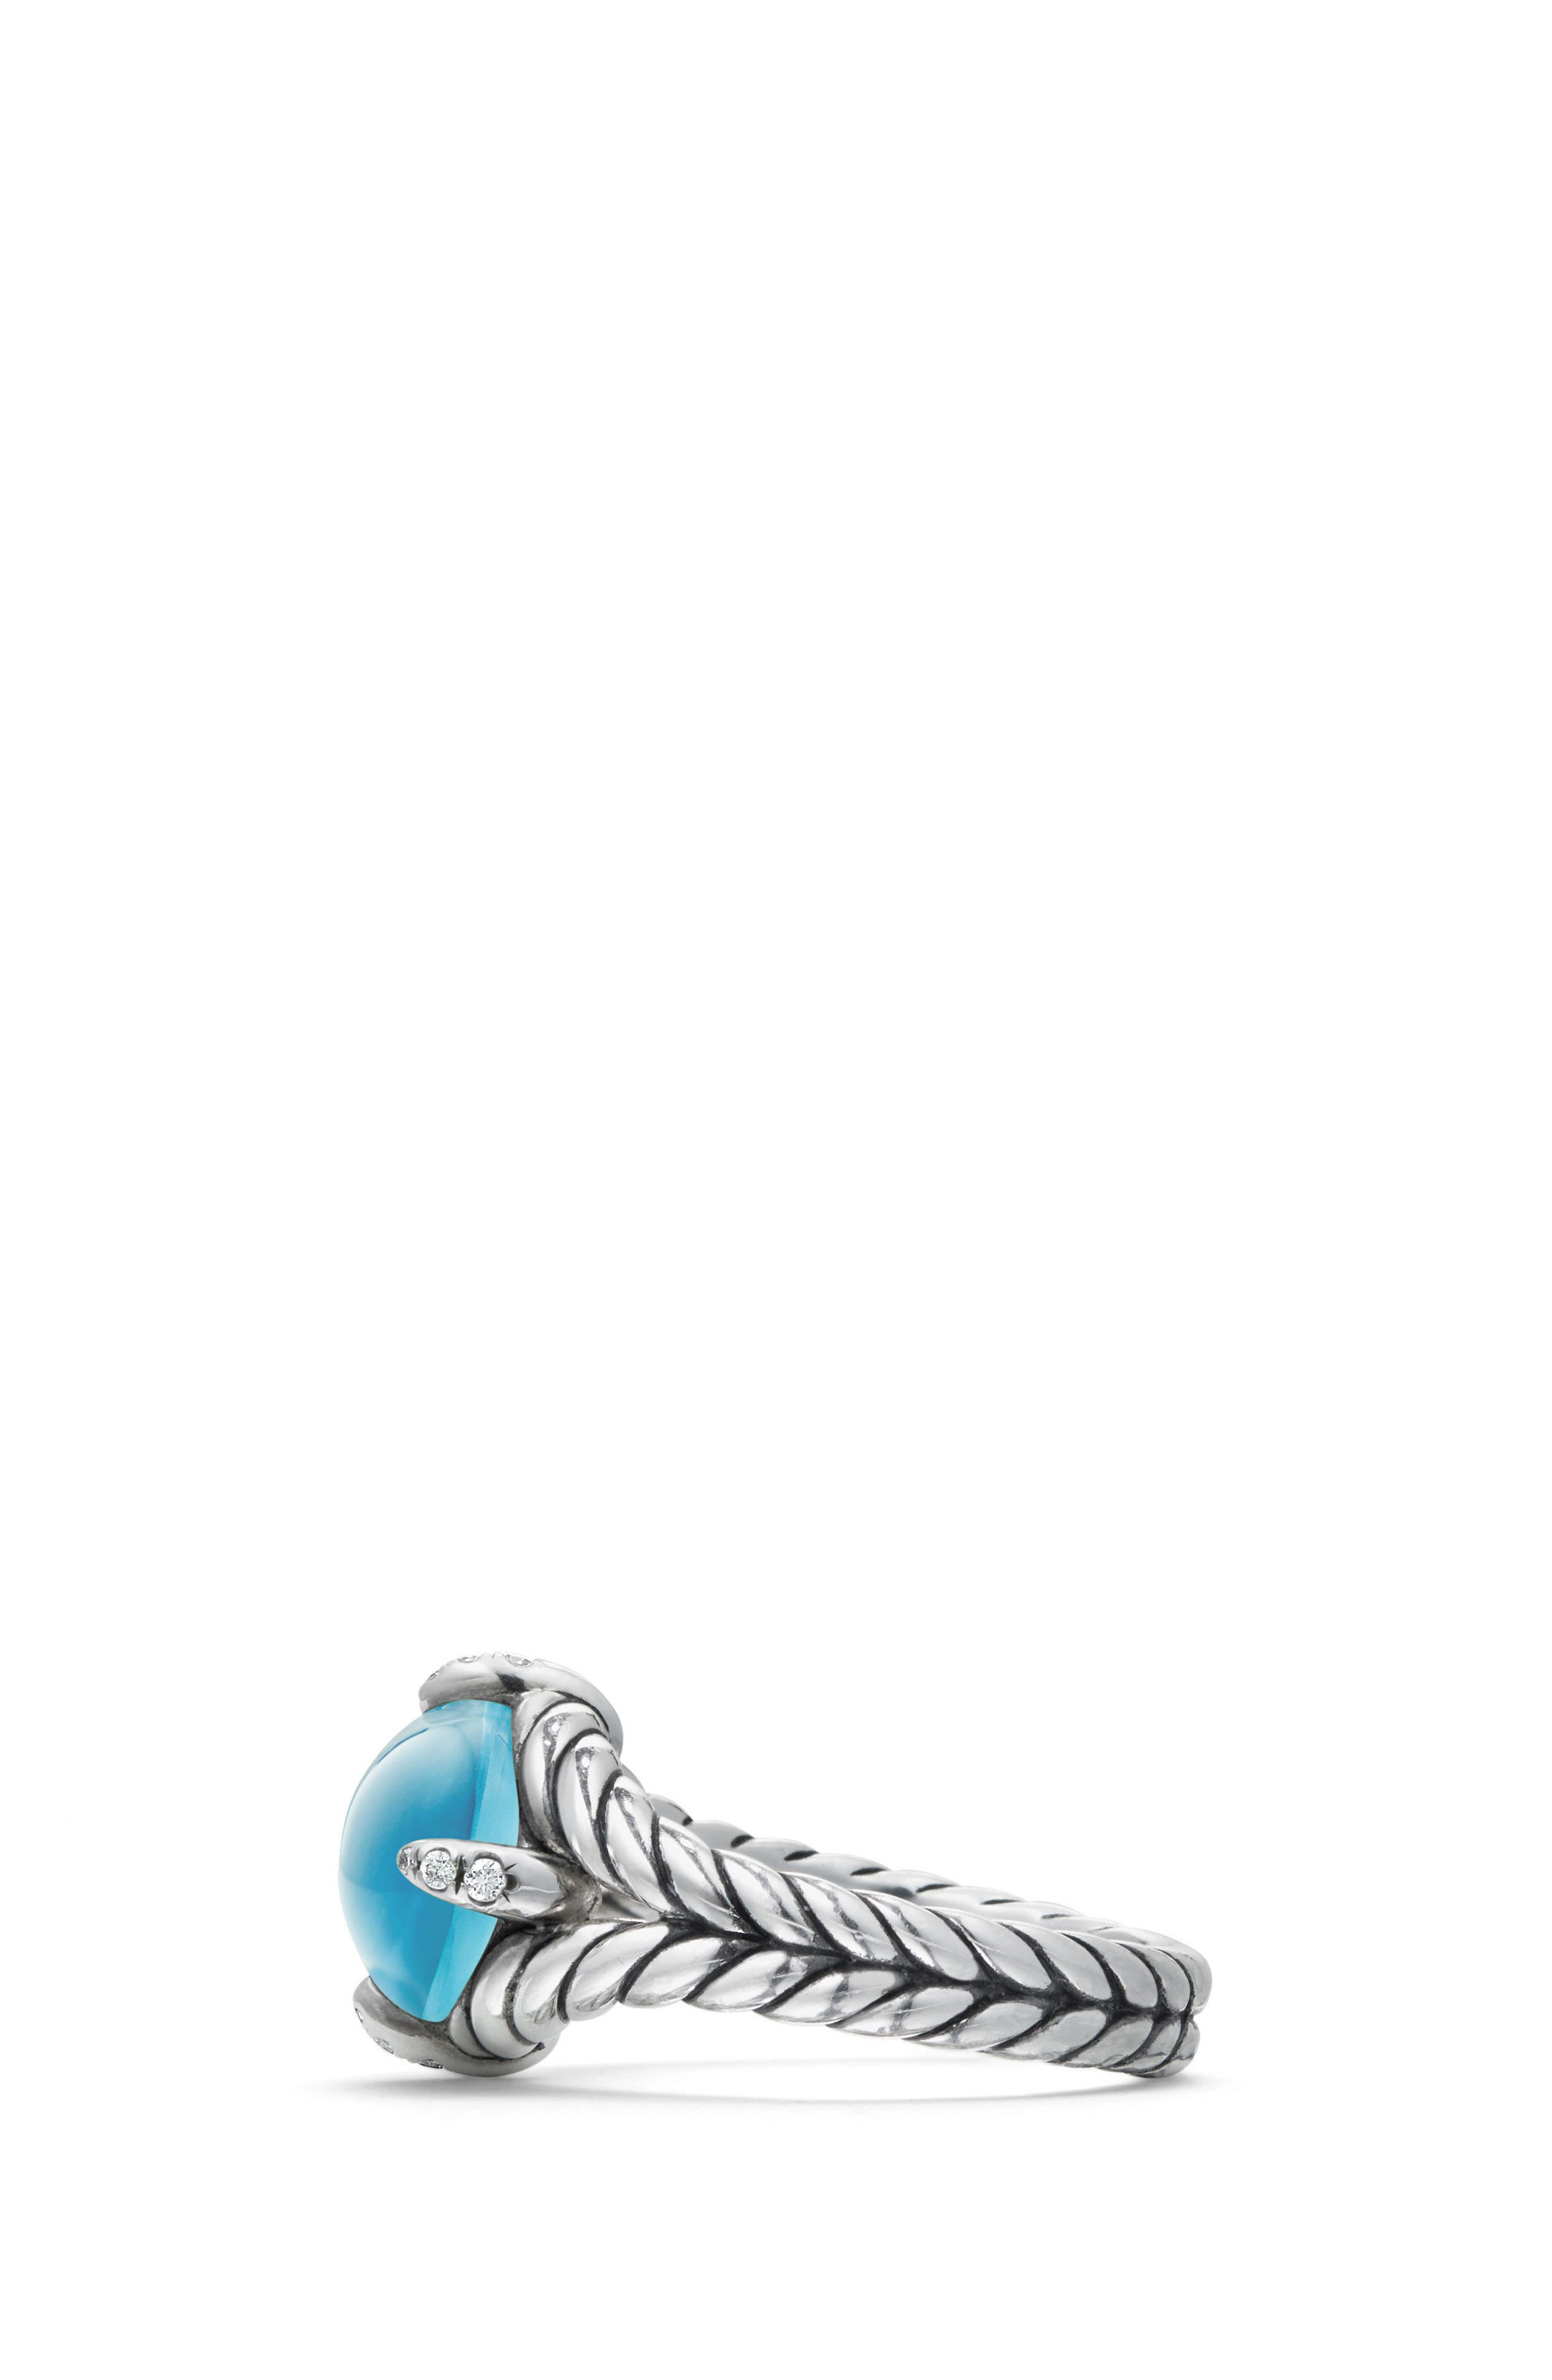 Chatelaine<sup>®</sup> Single Gemstone & Diamond Ring,                             Alternate thumbnail 2, color,                             Silver/ Diamond/ Blue Topaz